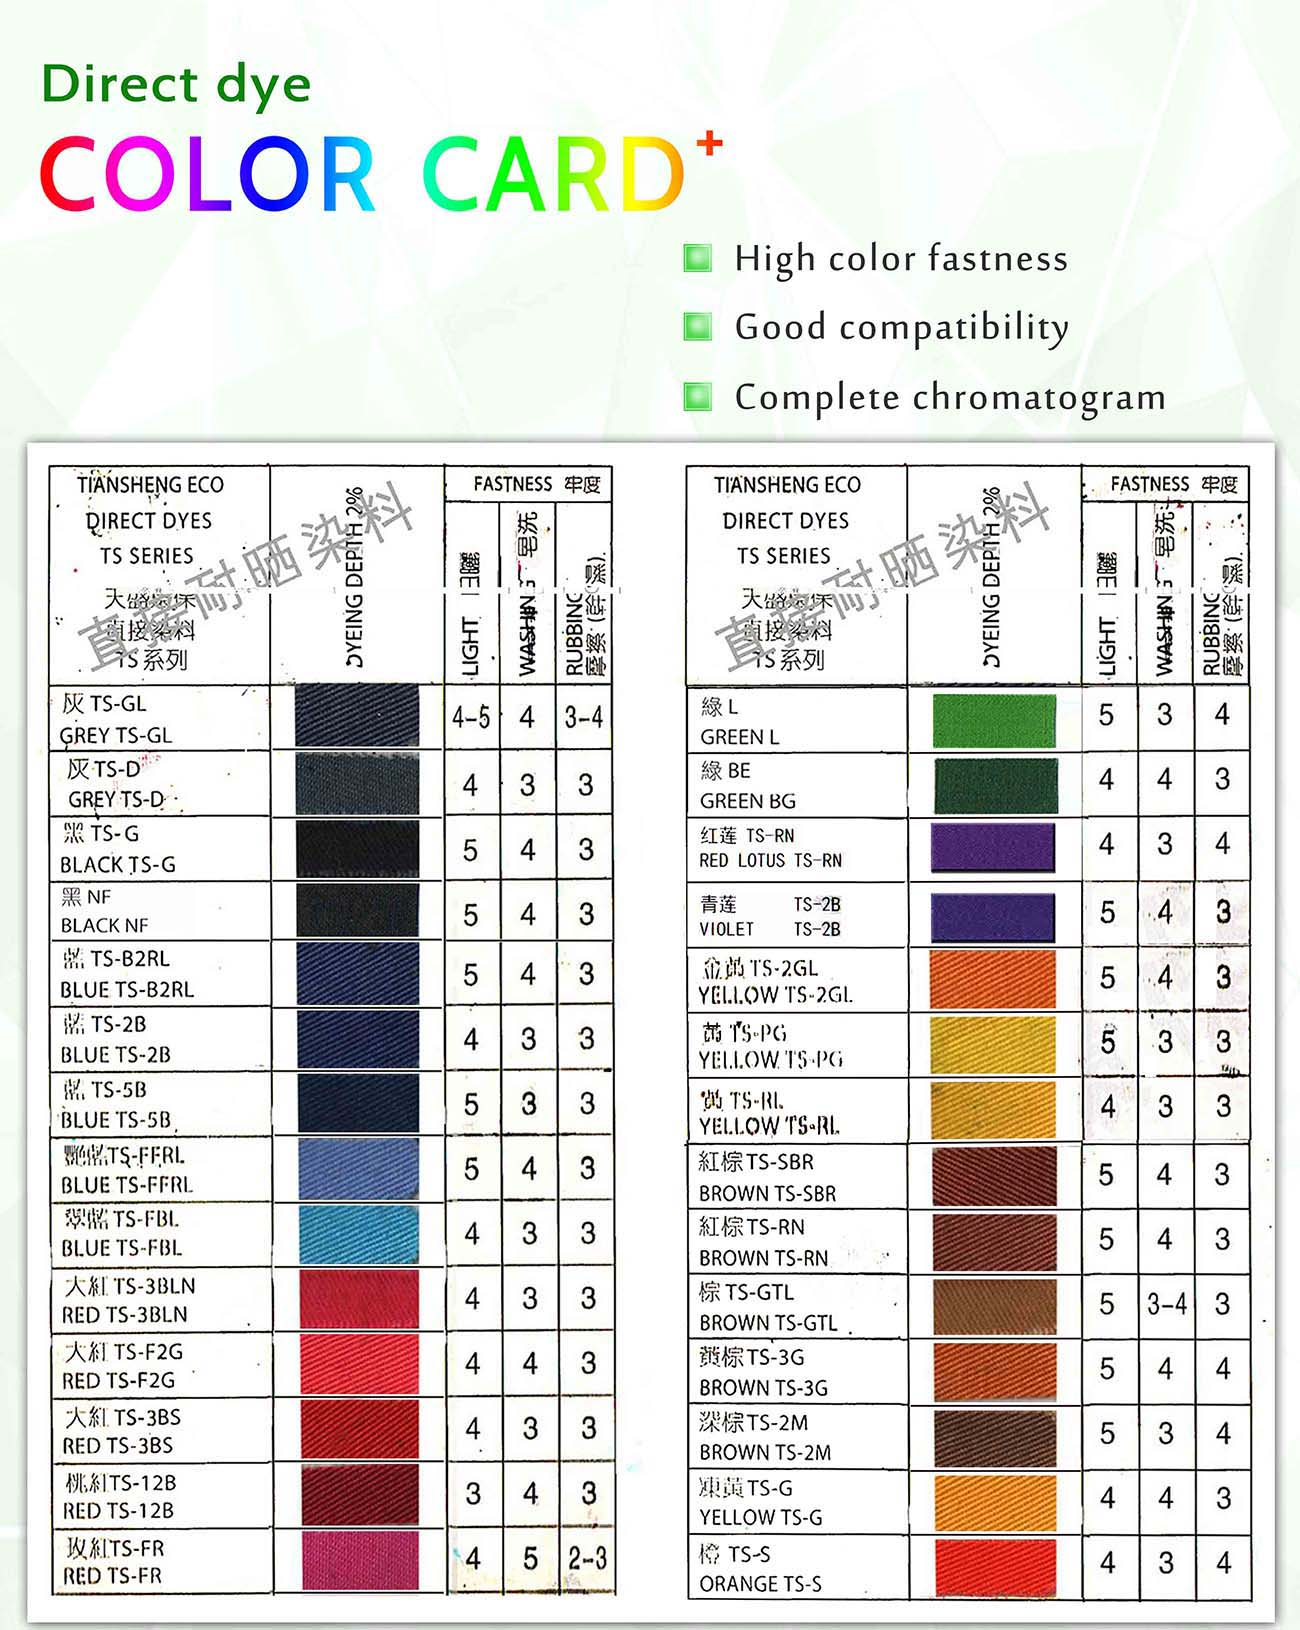 Direct Dyes Colors